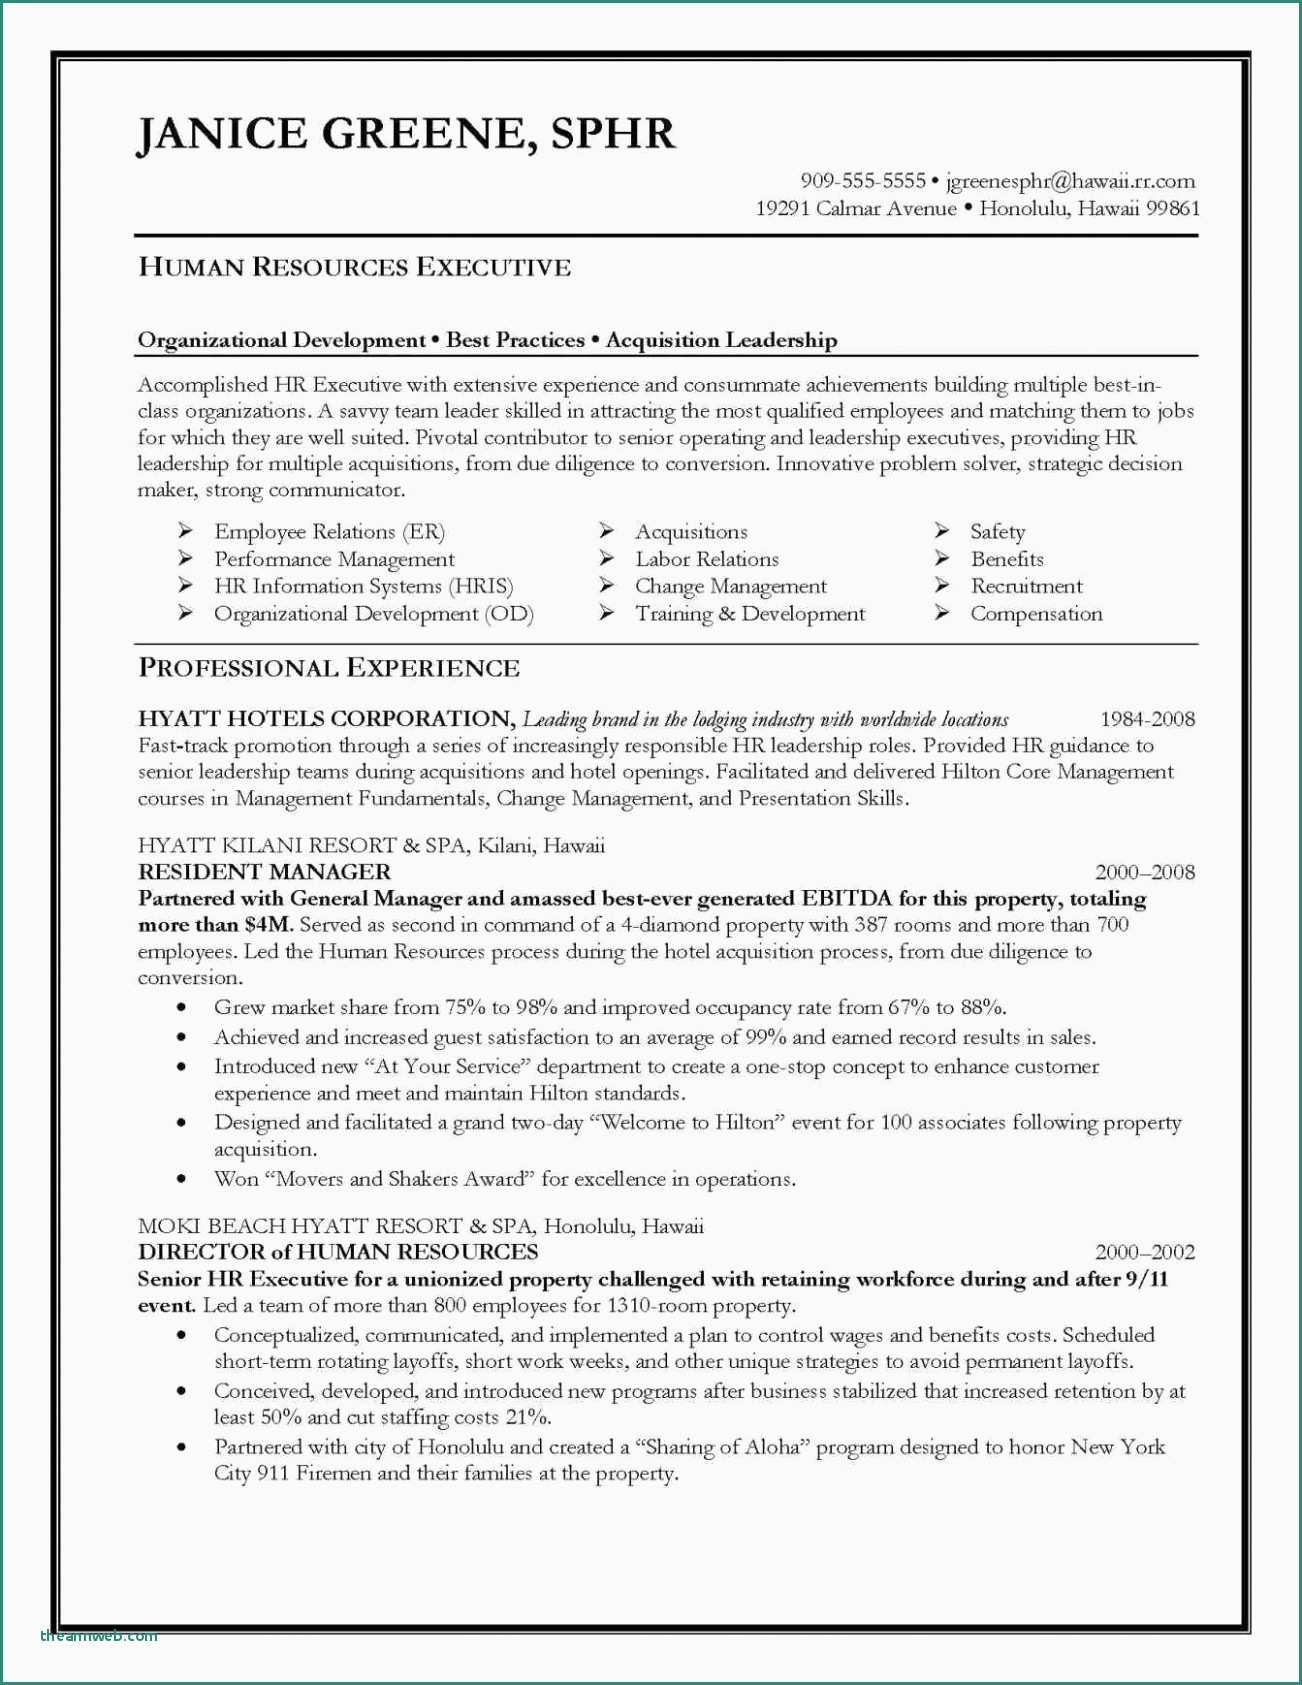 Resume Training New Employees - Cover Letter Examples for Laborer Jobs Hr Cover Letter Inspirational